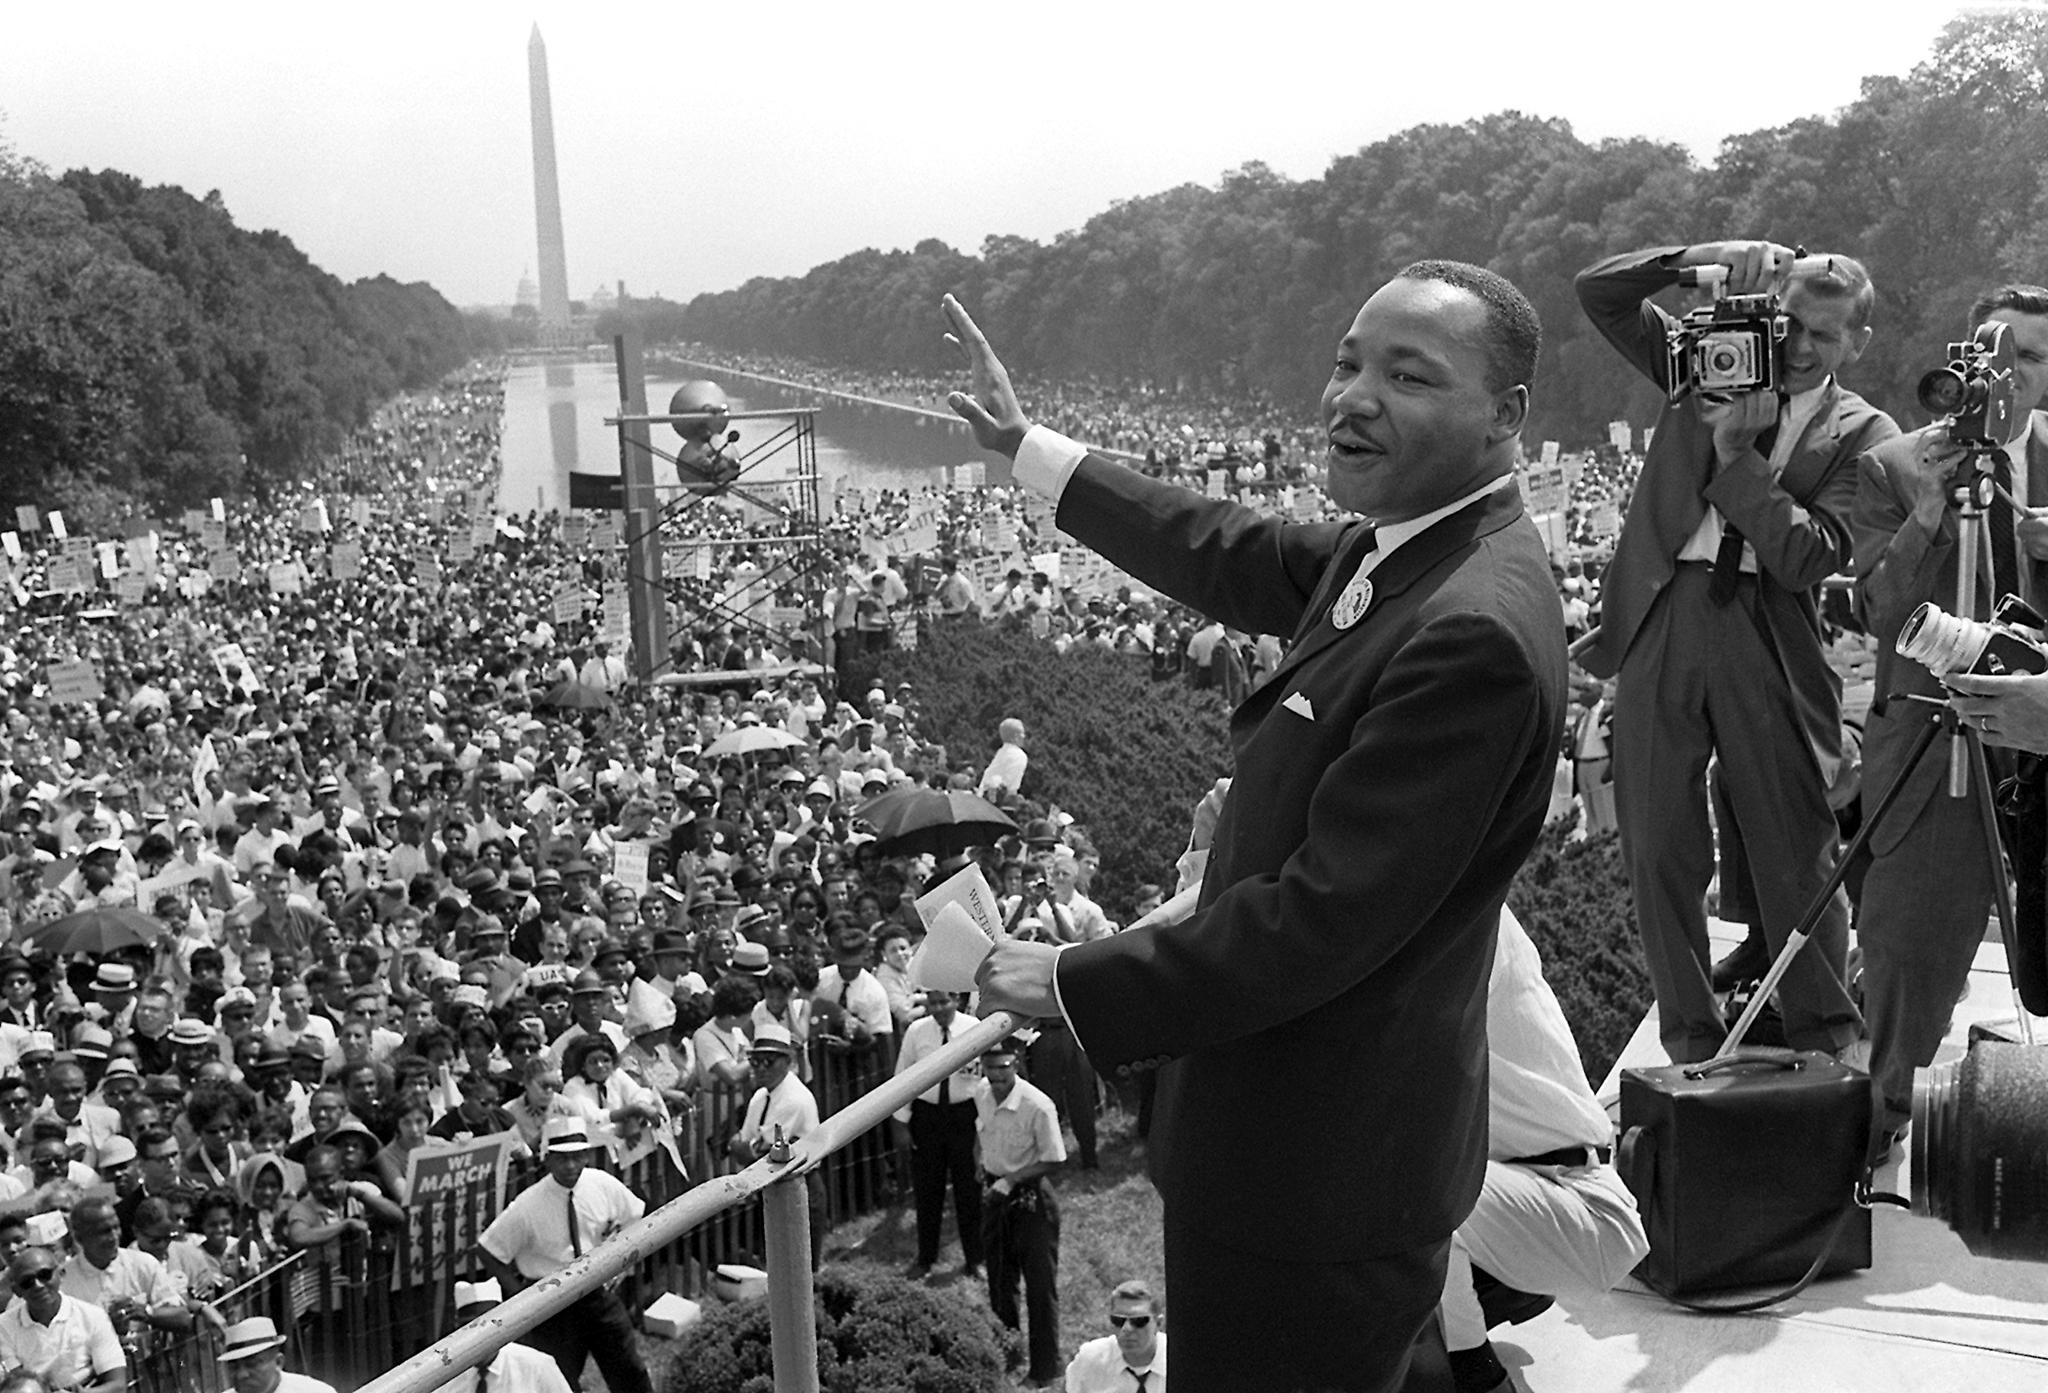 Martin Luther King S I Have A Dream Speech August 28 1963 Full Video By Blog In Jordan Medium Transcript Of Dr. Text To The Junior Analysi